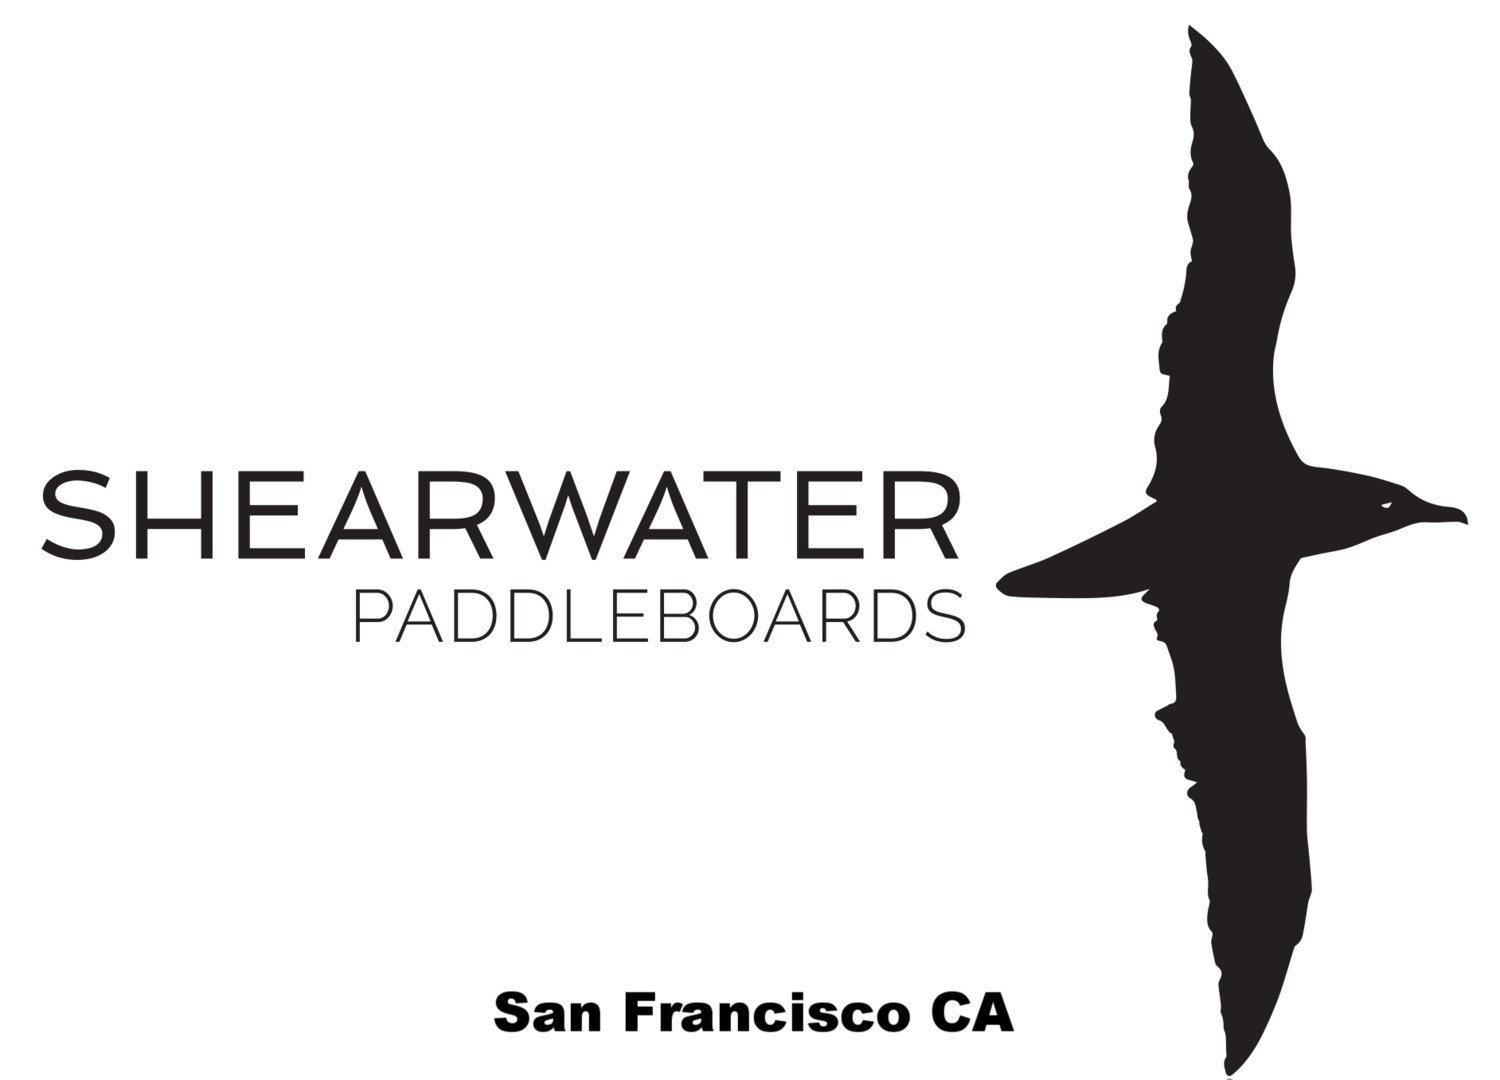 Shearwater Paddleboards